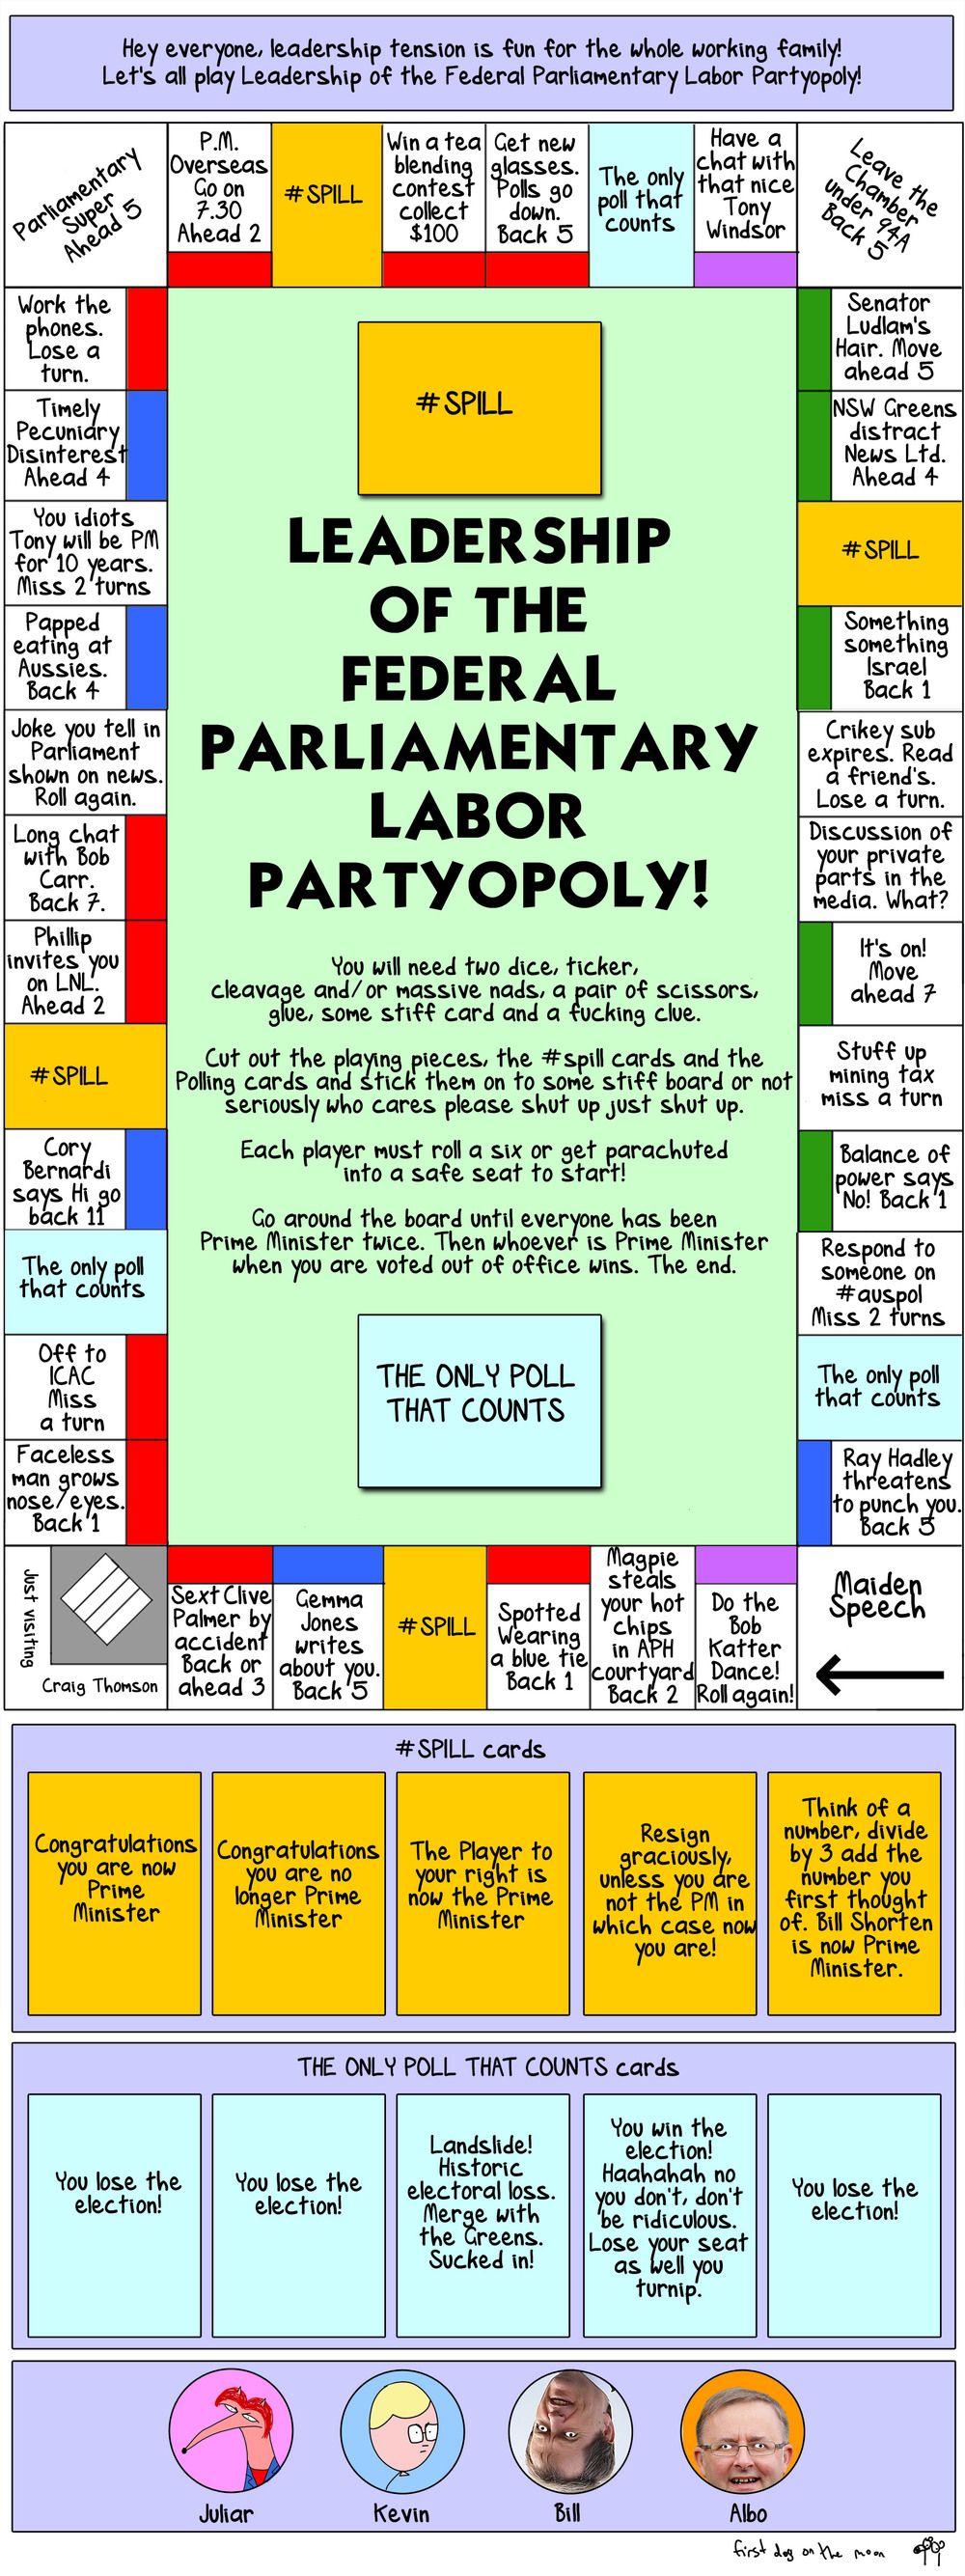 Hey kids, let's play Leadership Speculationopoly!